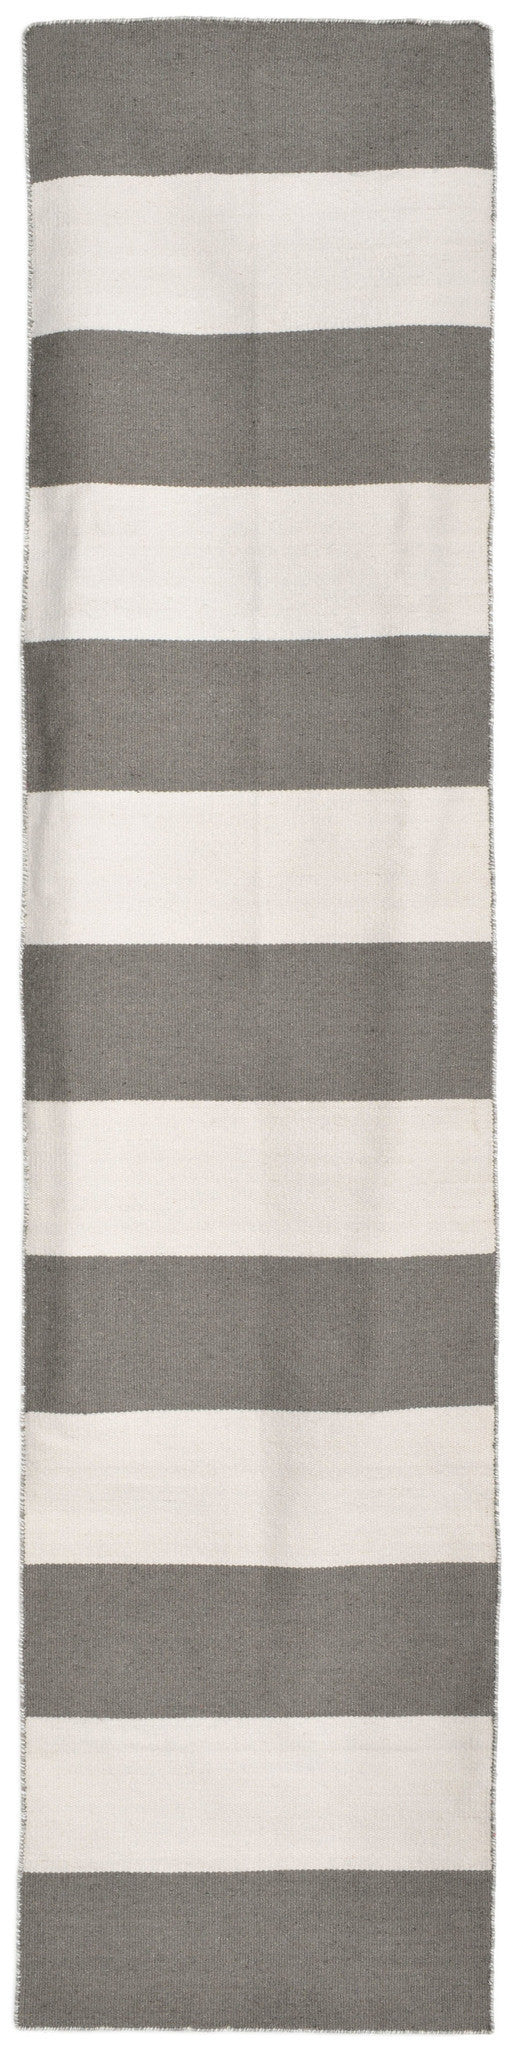 Sorrento Rugby Stripe Grey Indoor/Outdoor Rug